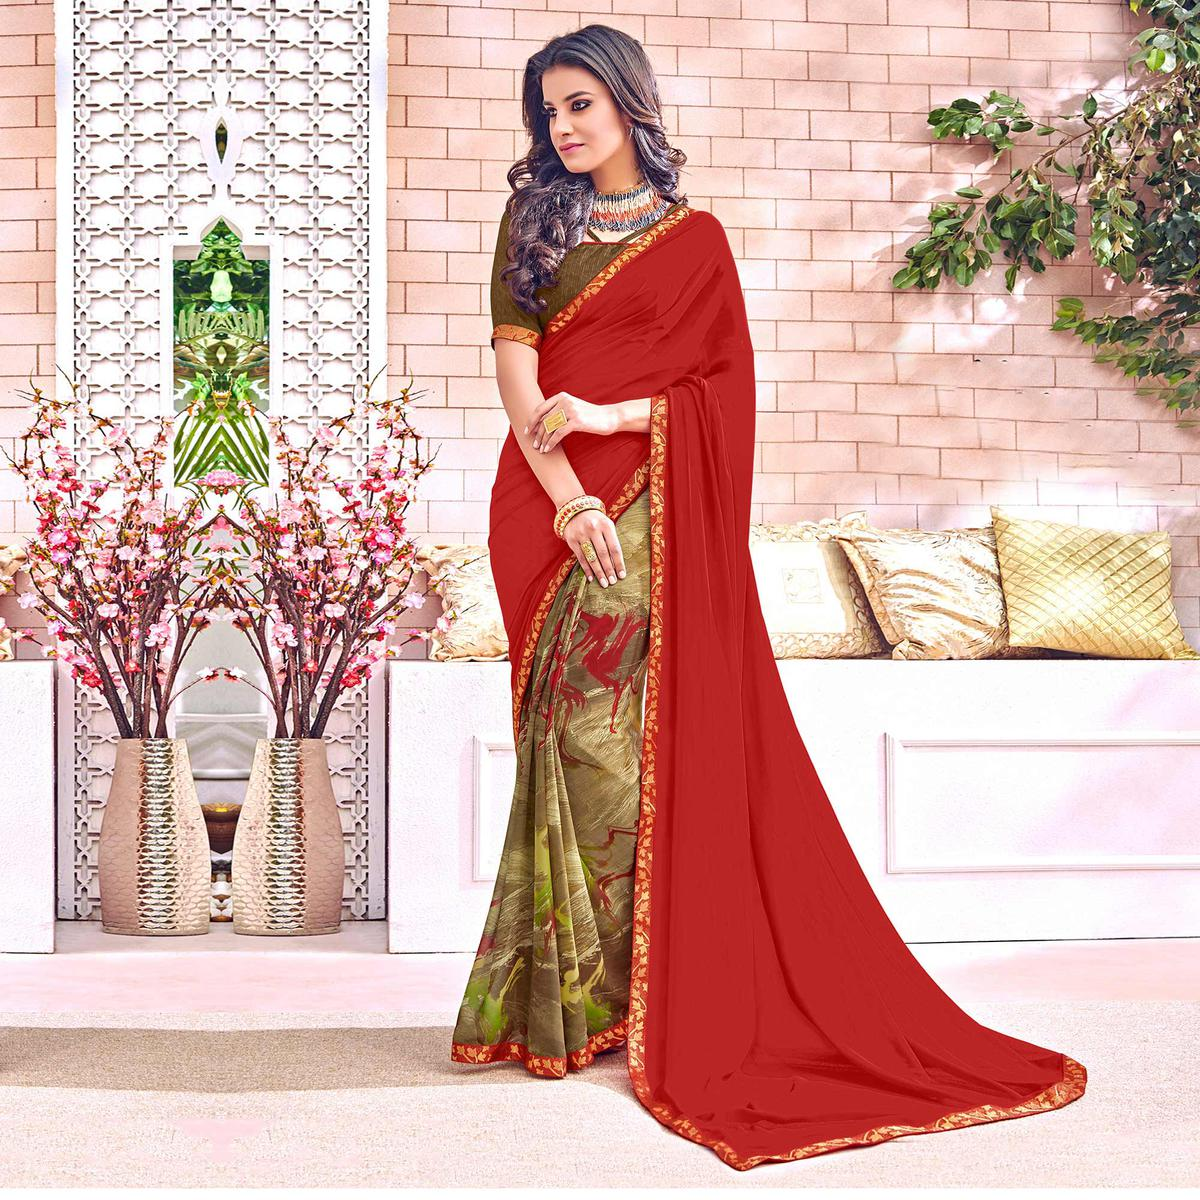 Precious Maroon Colored Designer Digital Printed Georgette Saree